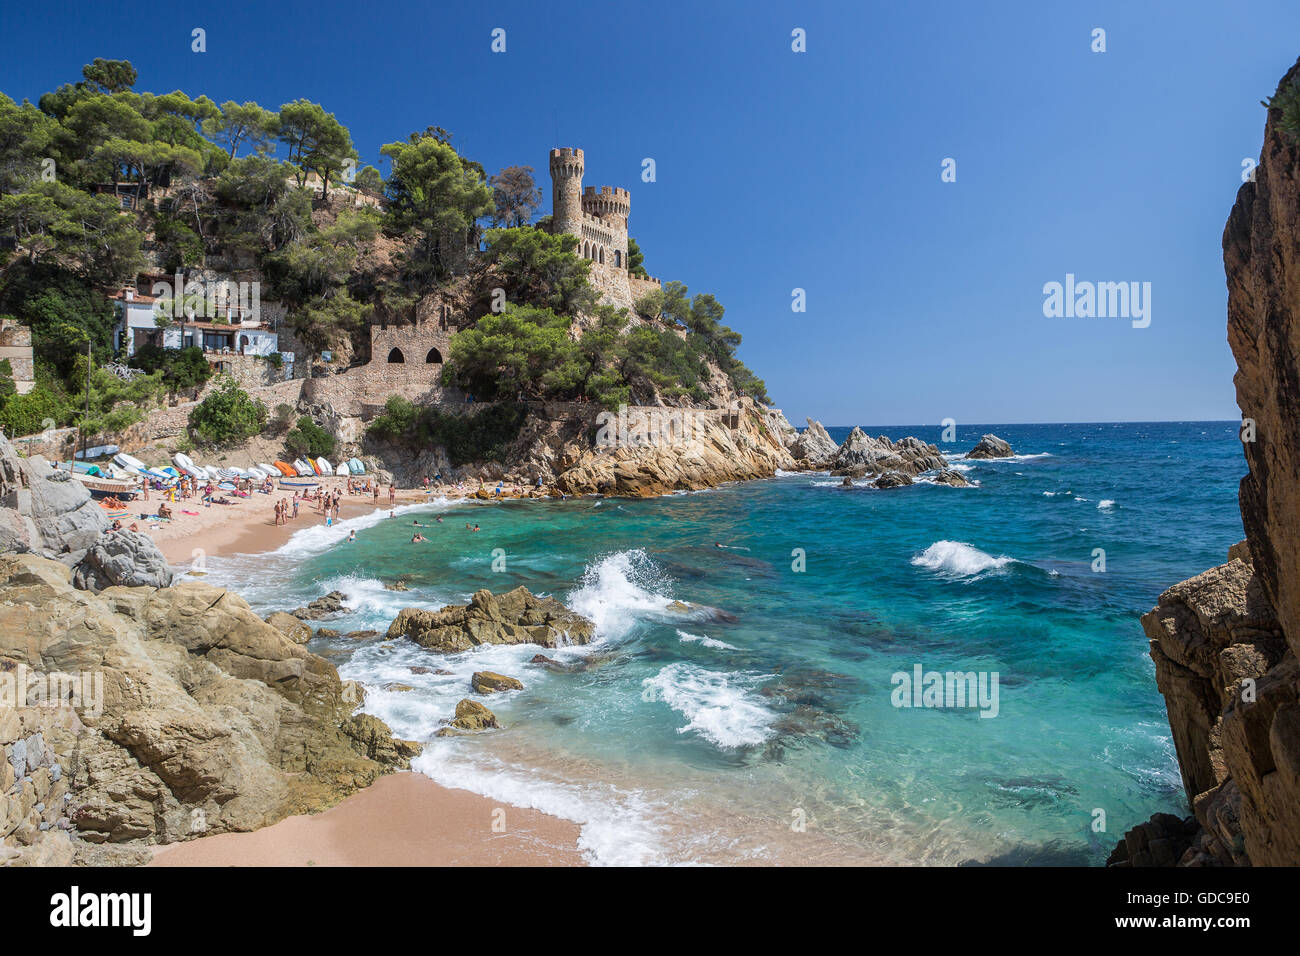 Spain,Catalonia,Costa Brava,Lloret de Mar City, - Stock Image